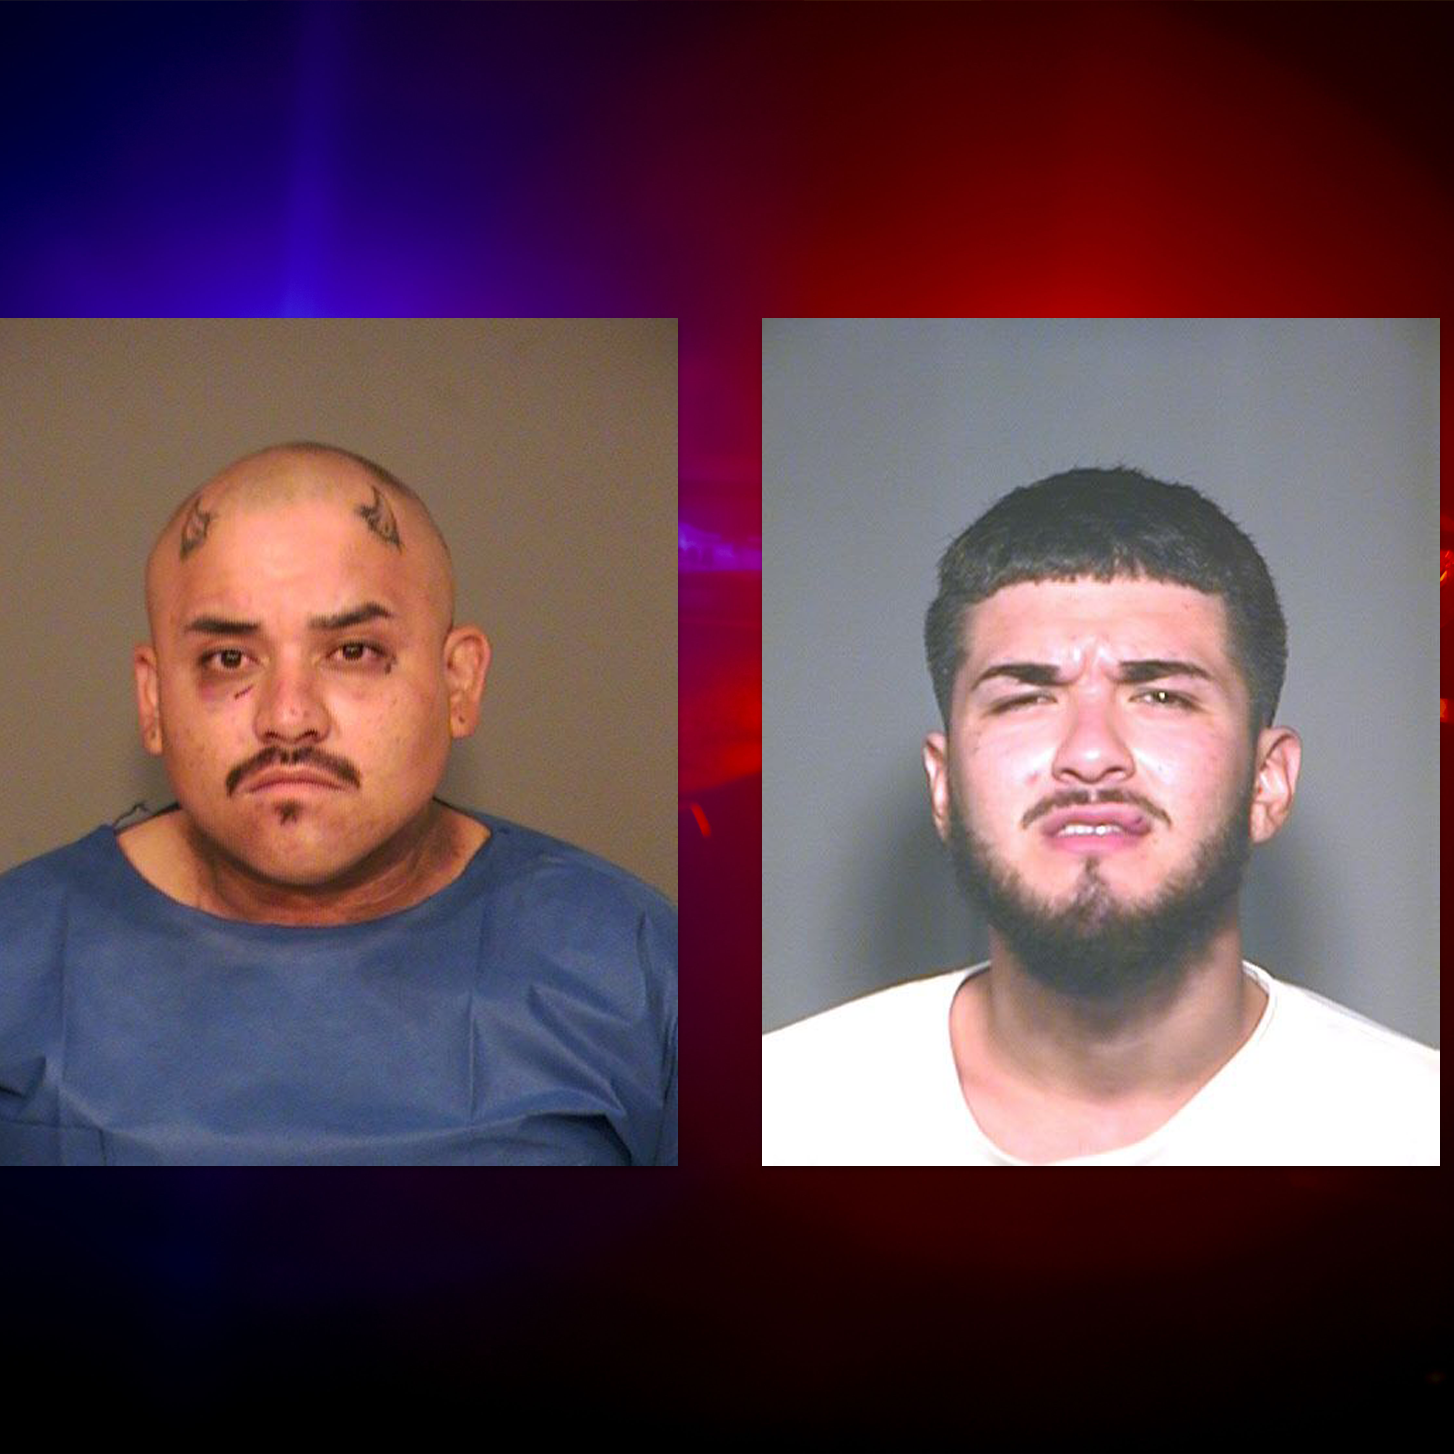 Brothers arrested in connection with fatal shooting of Chandler man